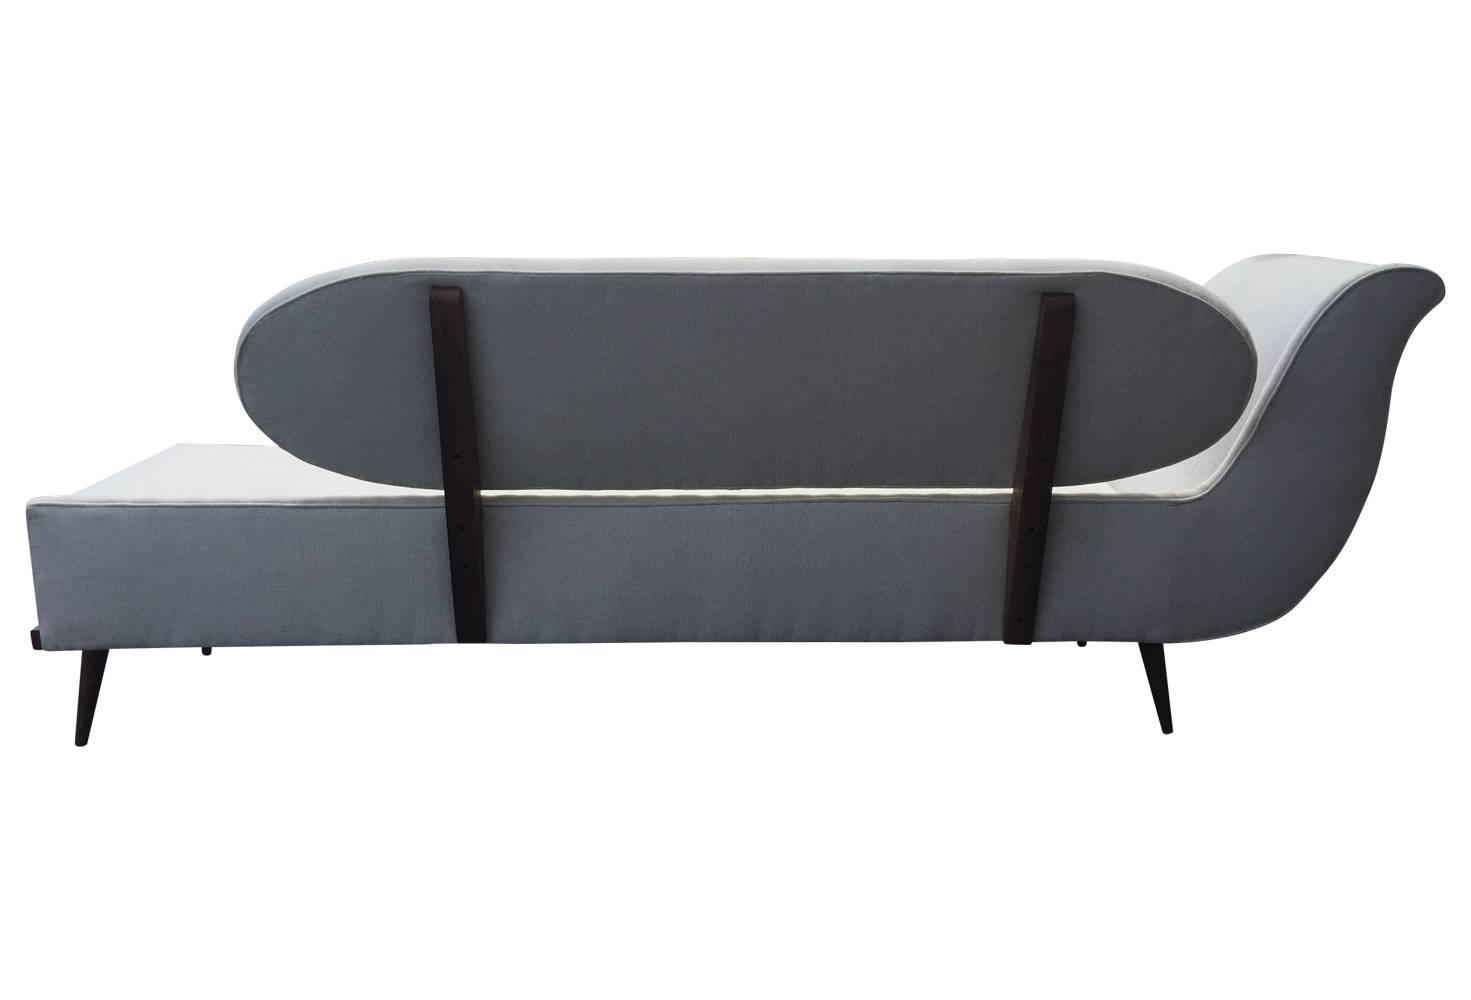 Exquisite Mid-Century Modern Sofa Settee By Cimon Of